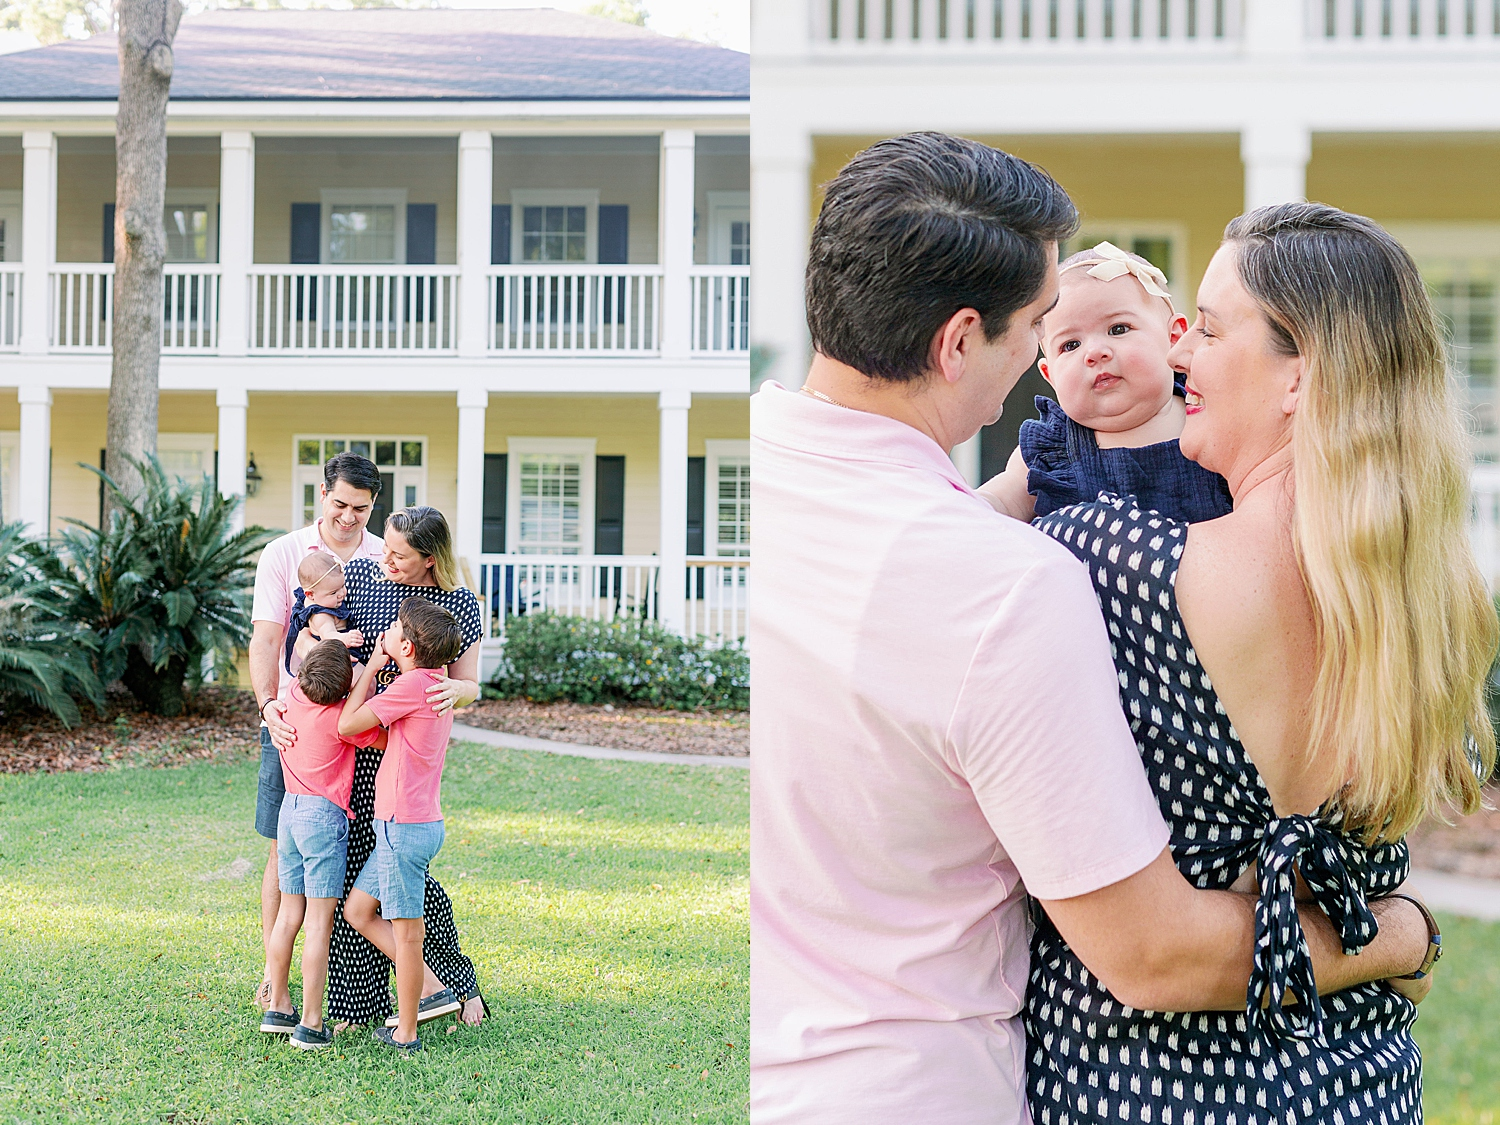 A family shares a warm embrace on the left of the photo while mom and dad smile at their baby girl on right